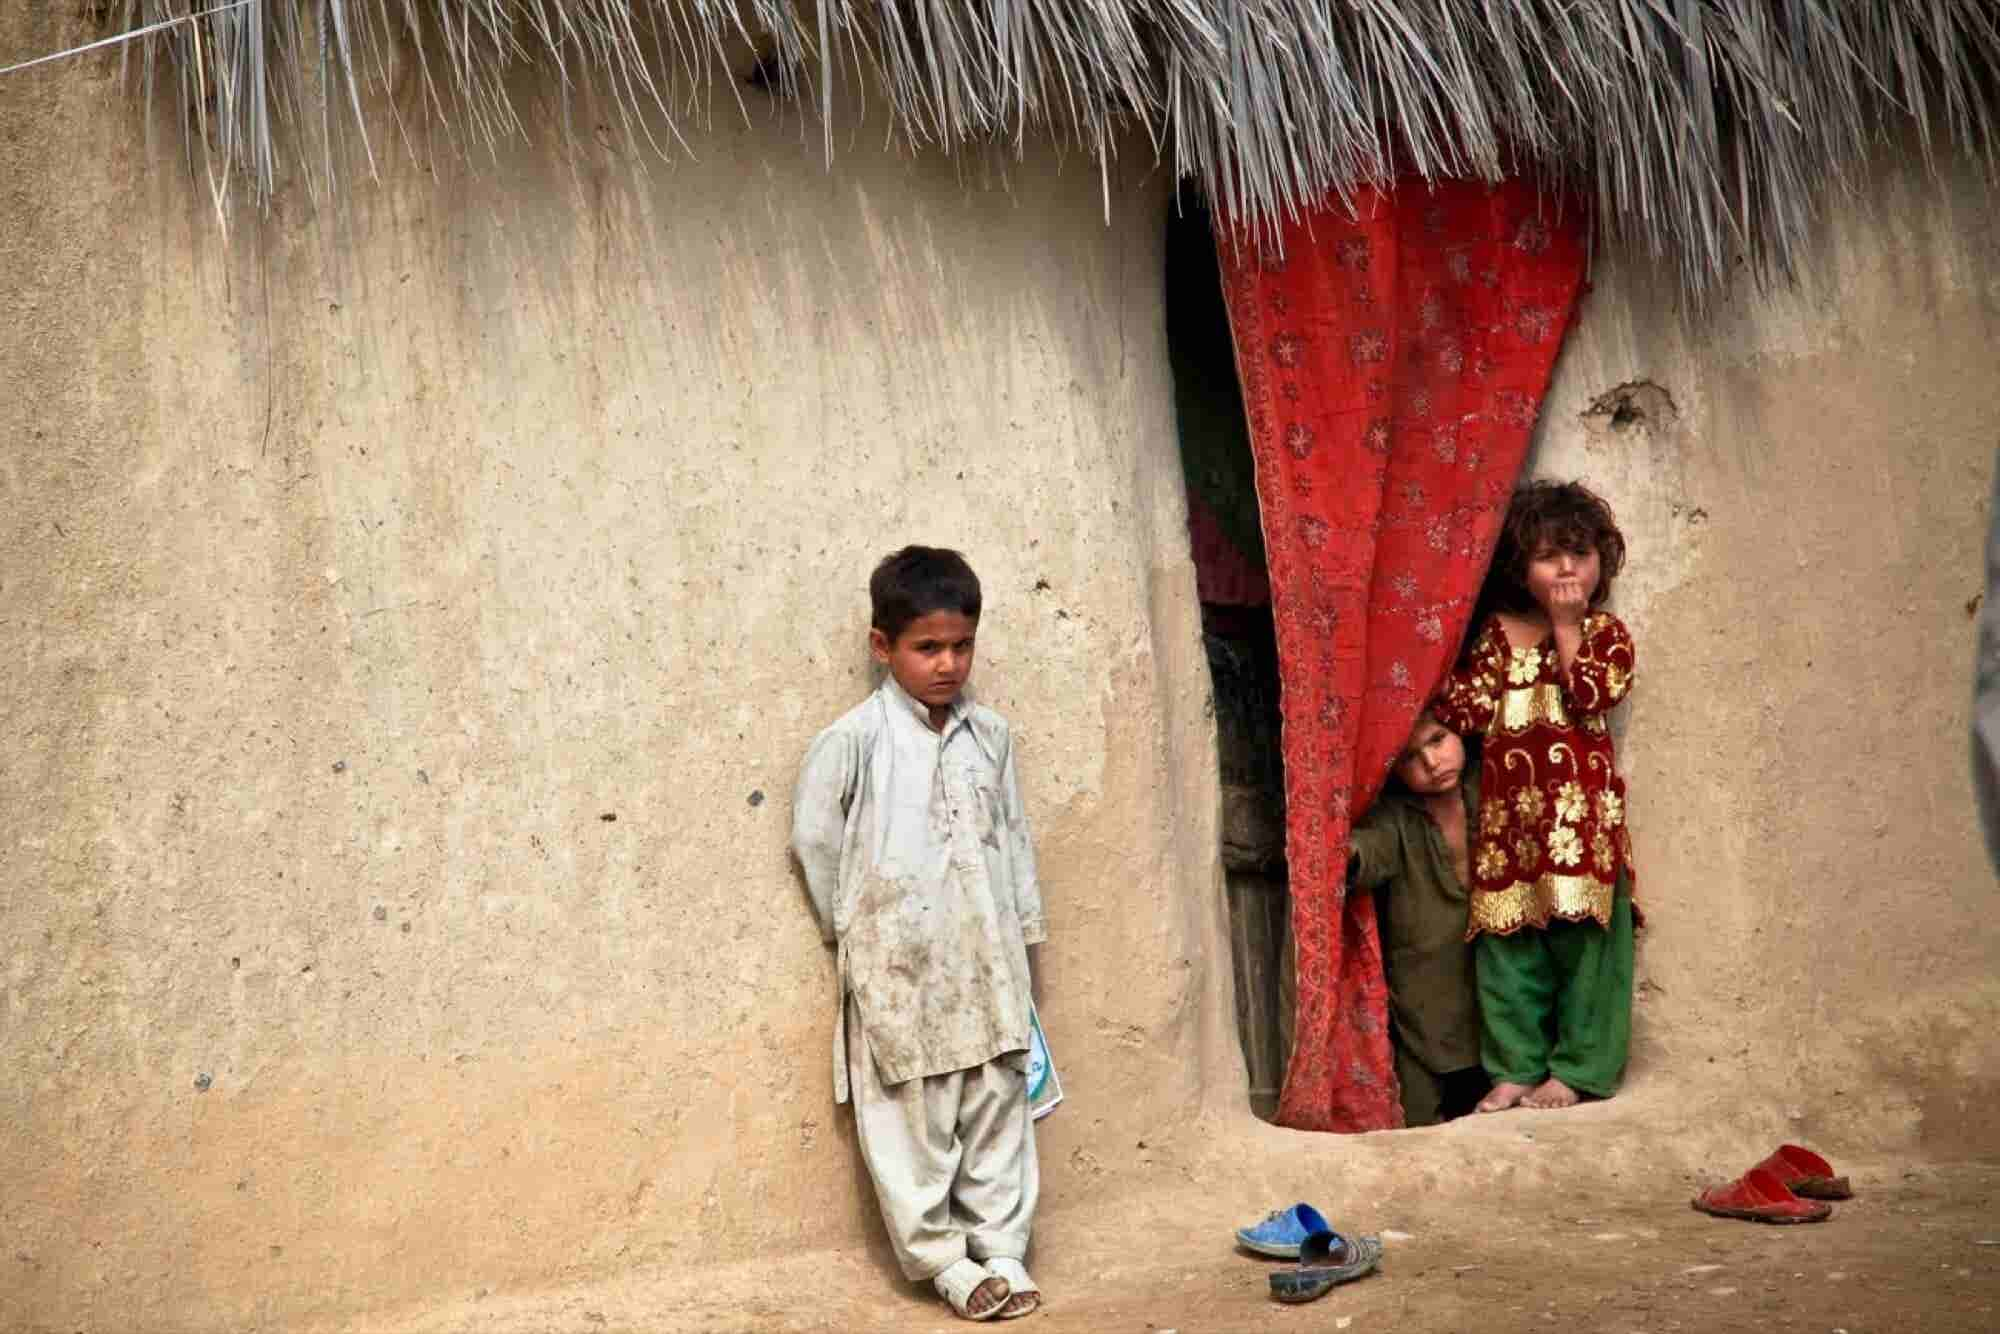 Budget 2017: A Welcome Move on One crore Houses for the Poor